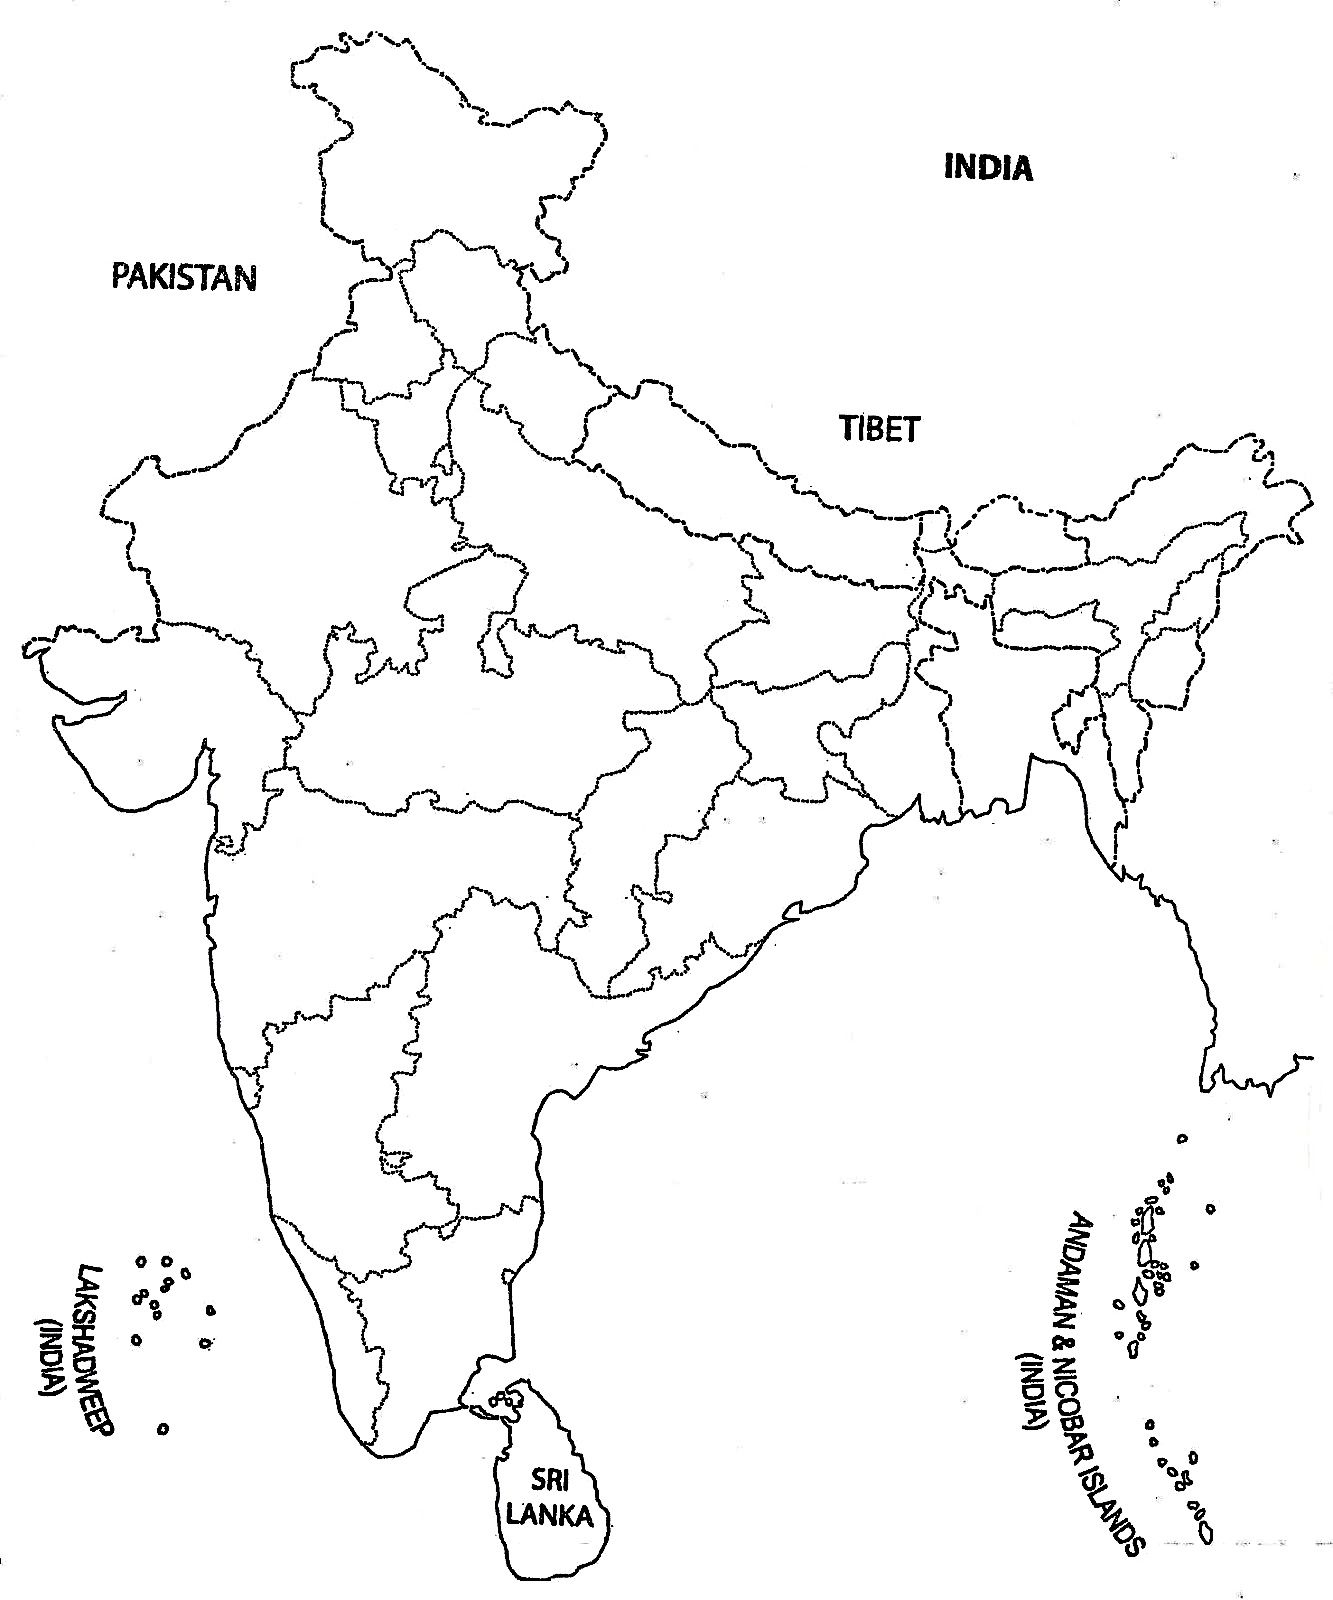 India Blank Map india map outline a4 size | Map of India With States | India map